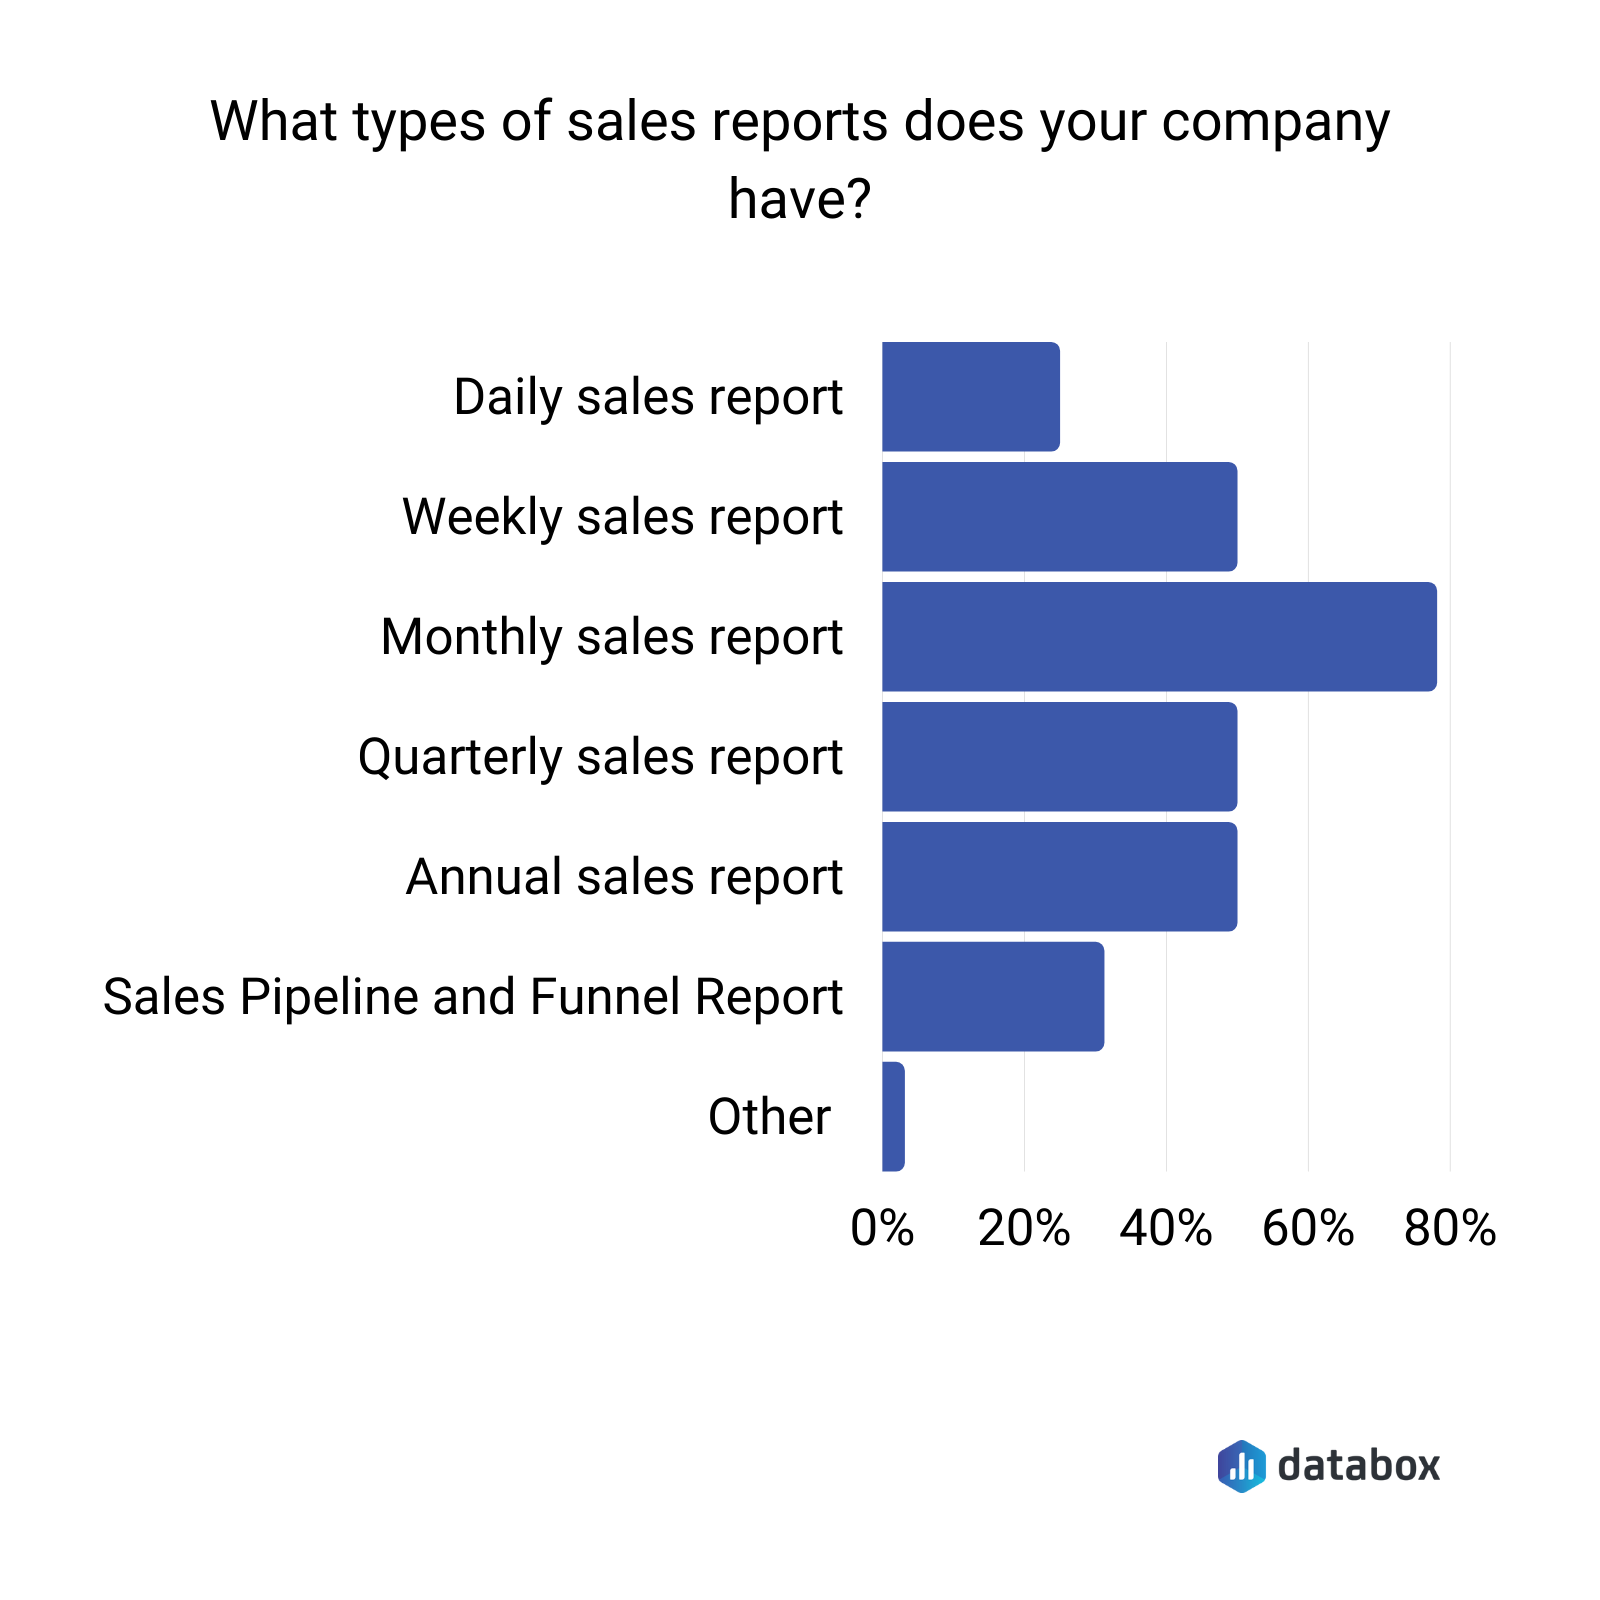 what types of sales reports does your company have?